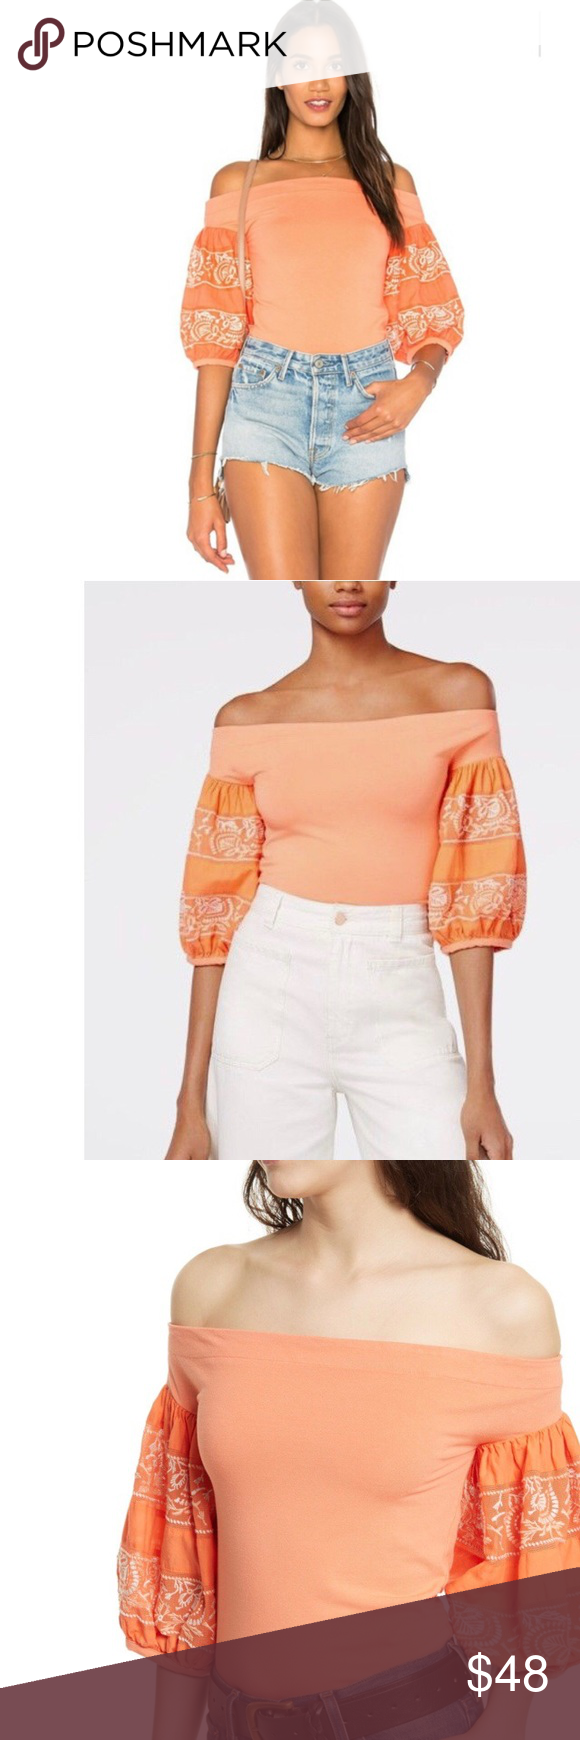 87eed2e5e2381 Free People Rock with It Off-the-Shoulder Top Free People Rock with It